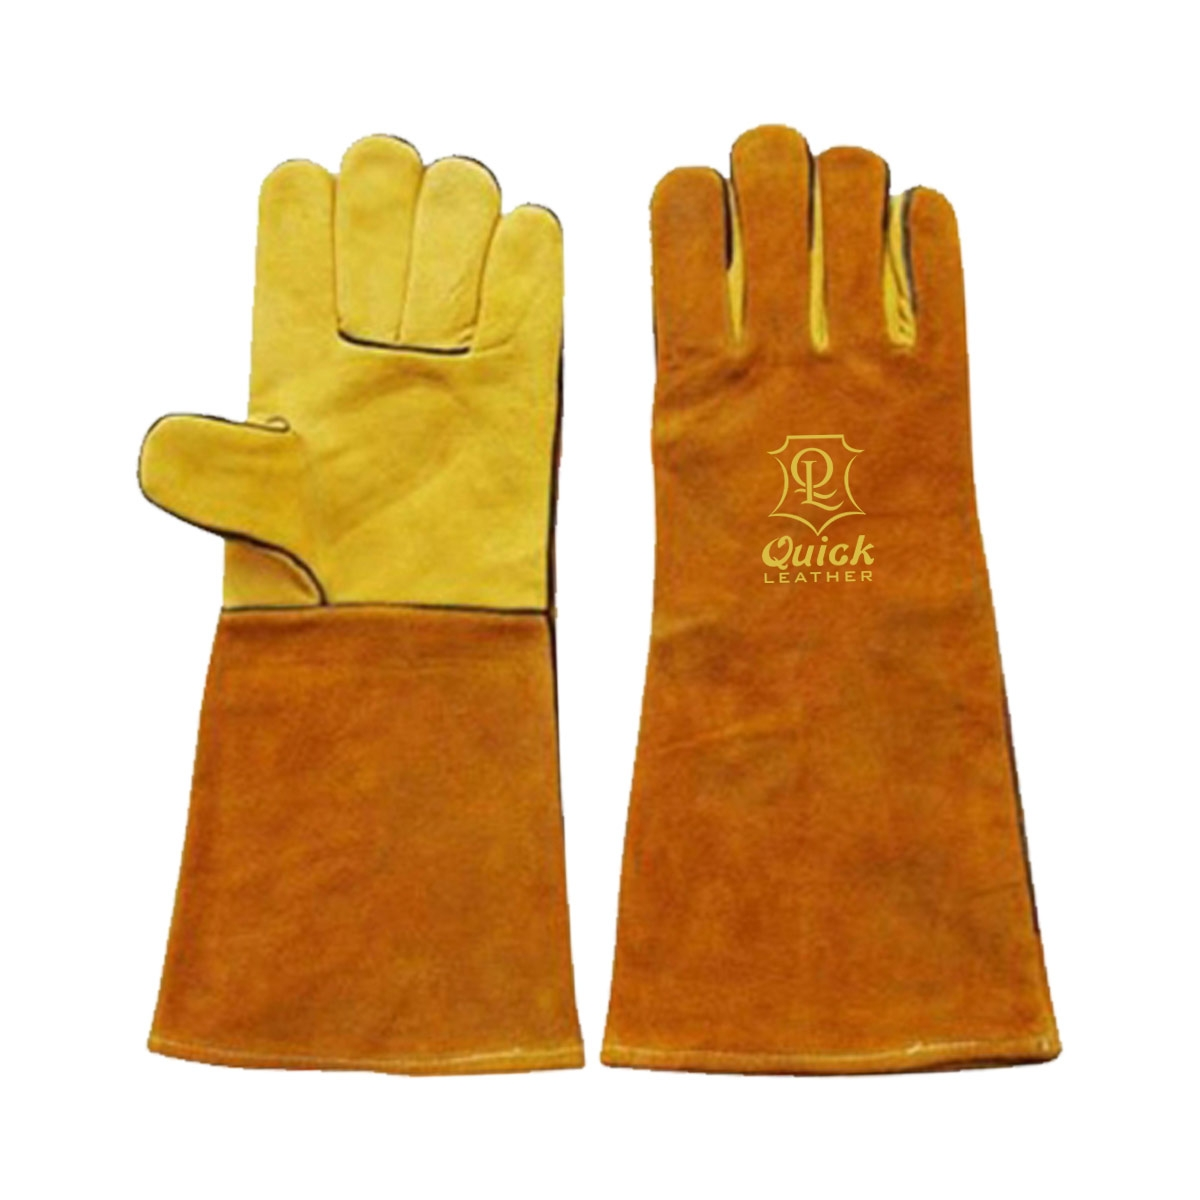 Welding gloves are excellent for use when welding in dry and oily conditions QL 209